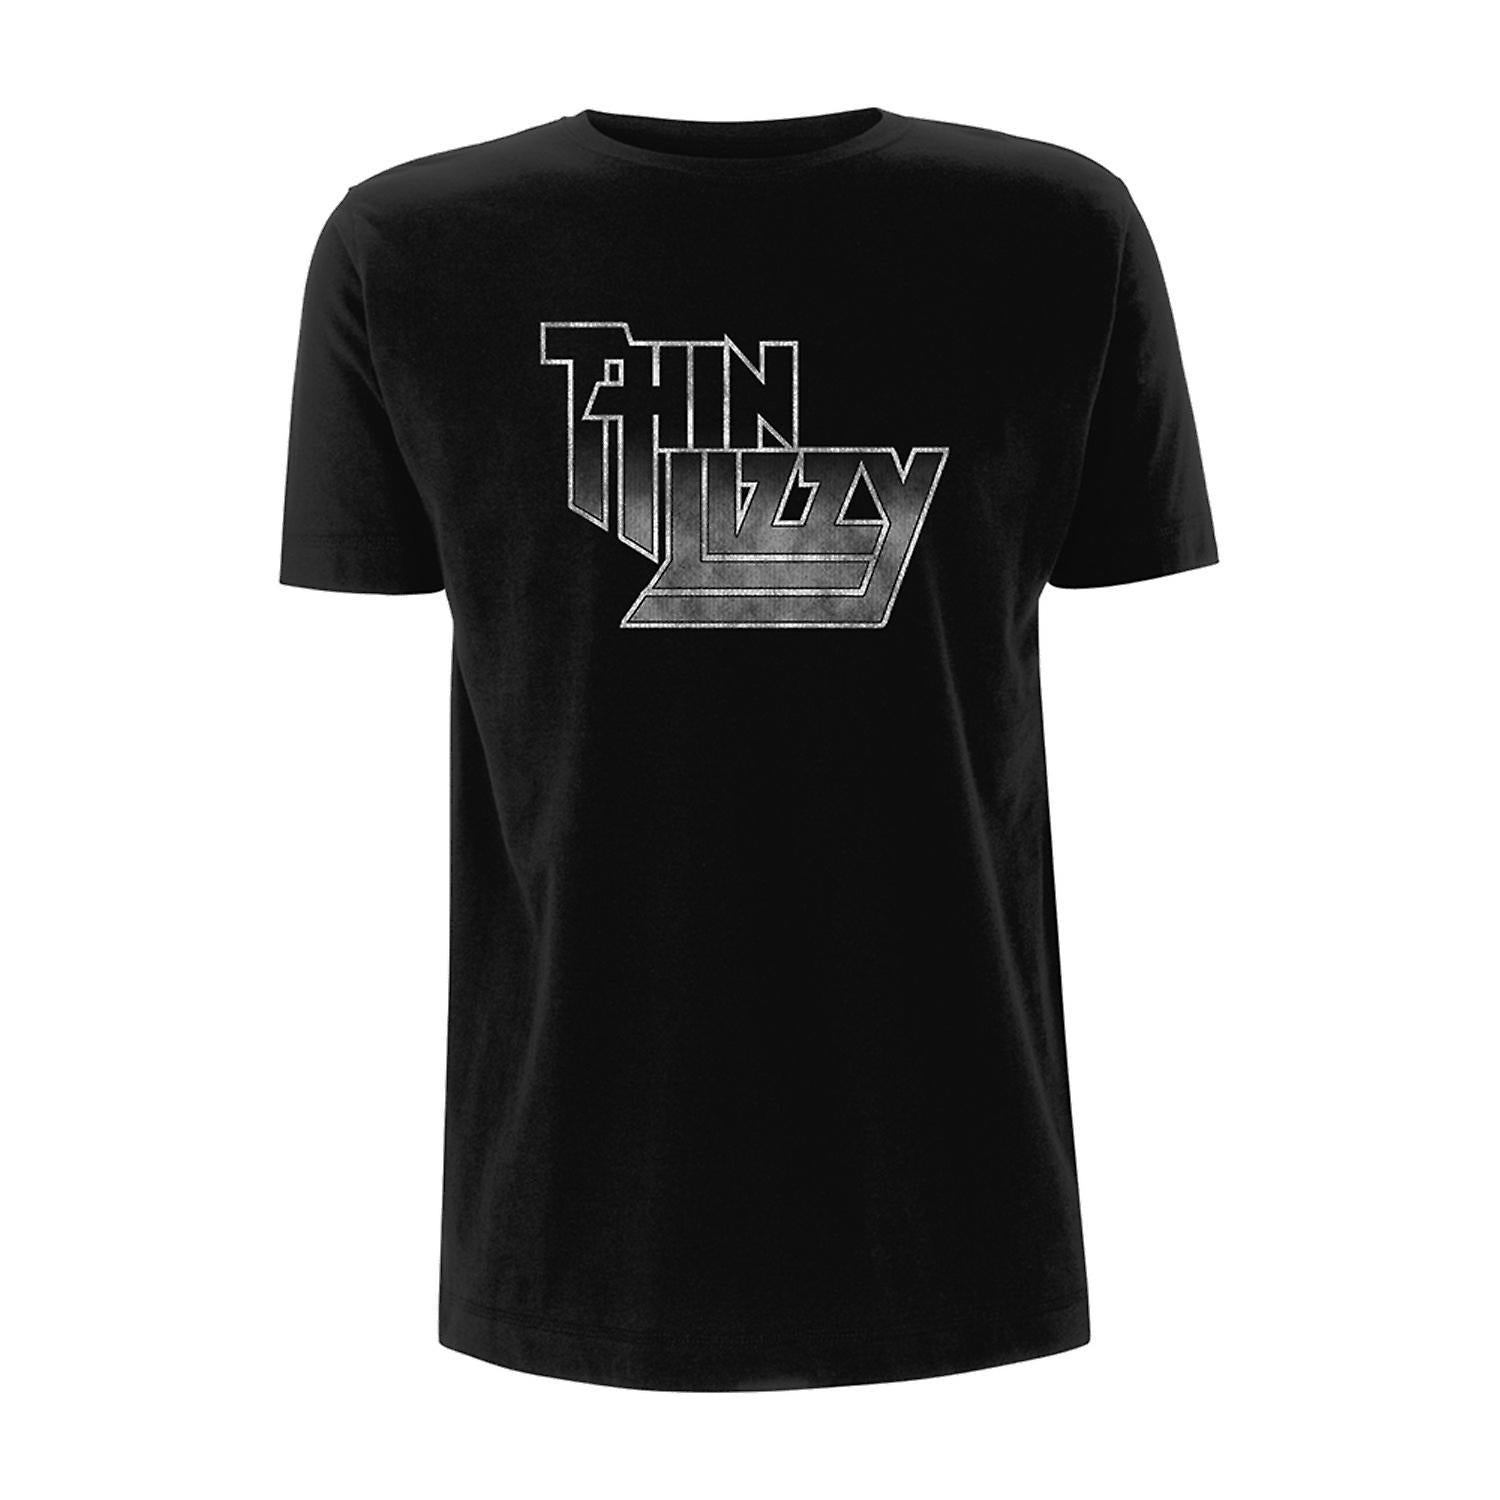 THIN LIZZY GRADIENT LOGO - X-LARGE [T-SHIRTS]